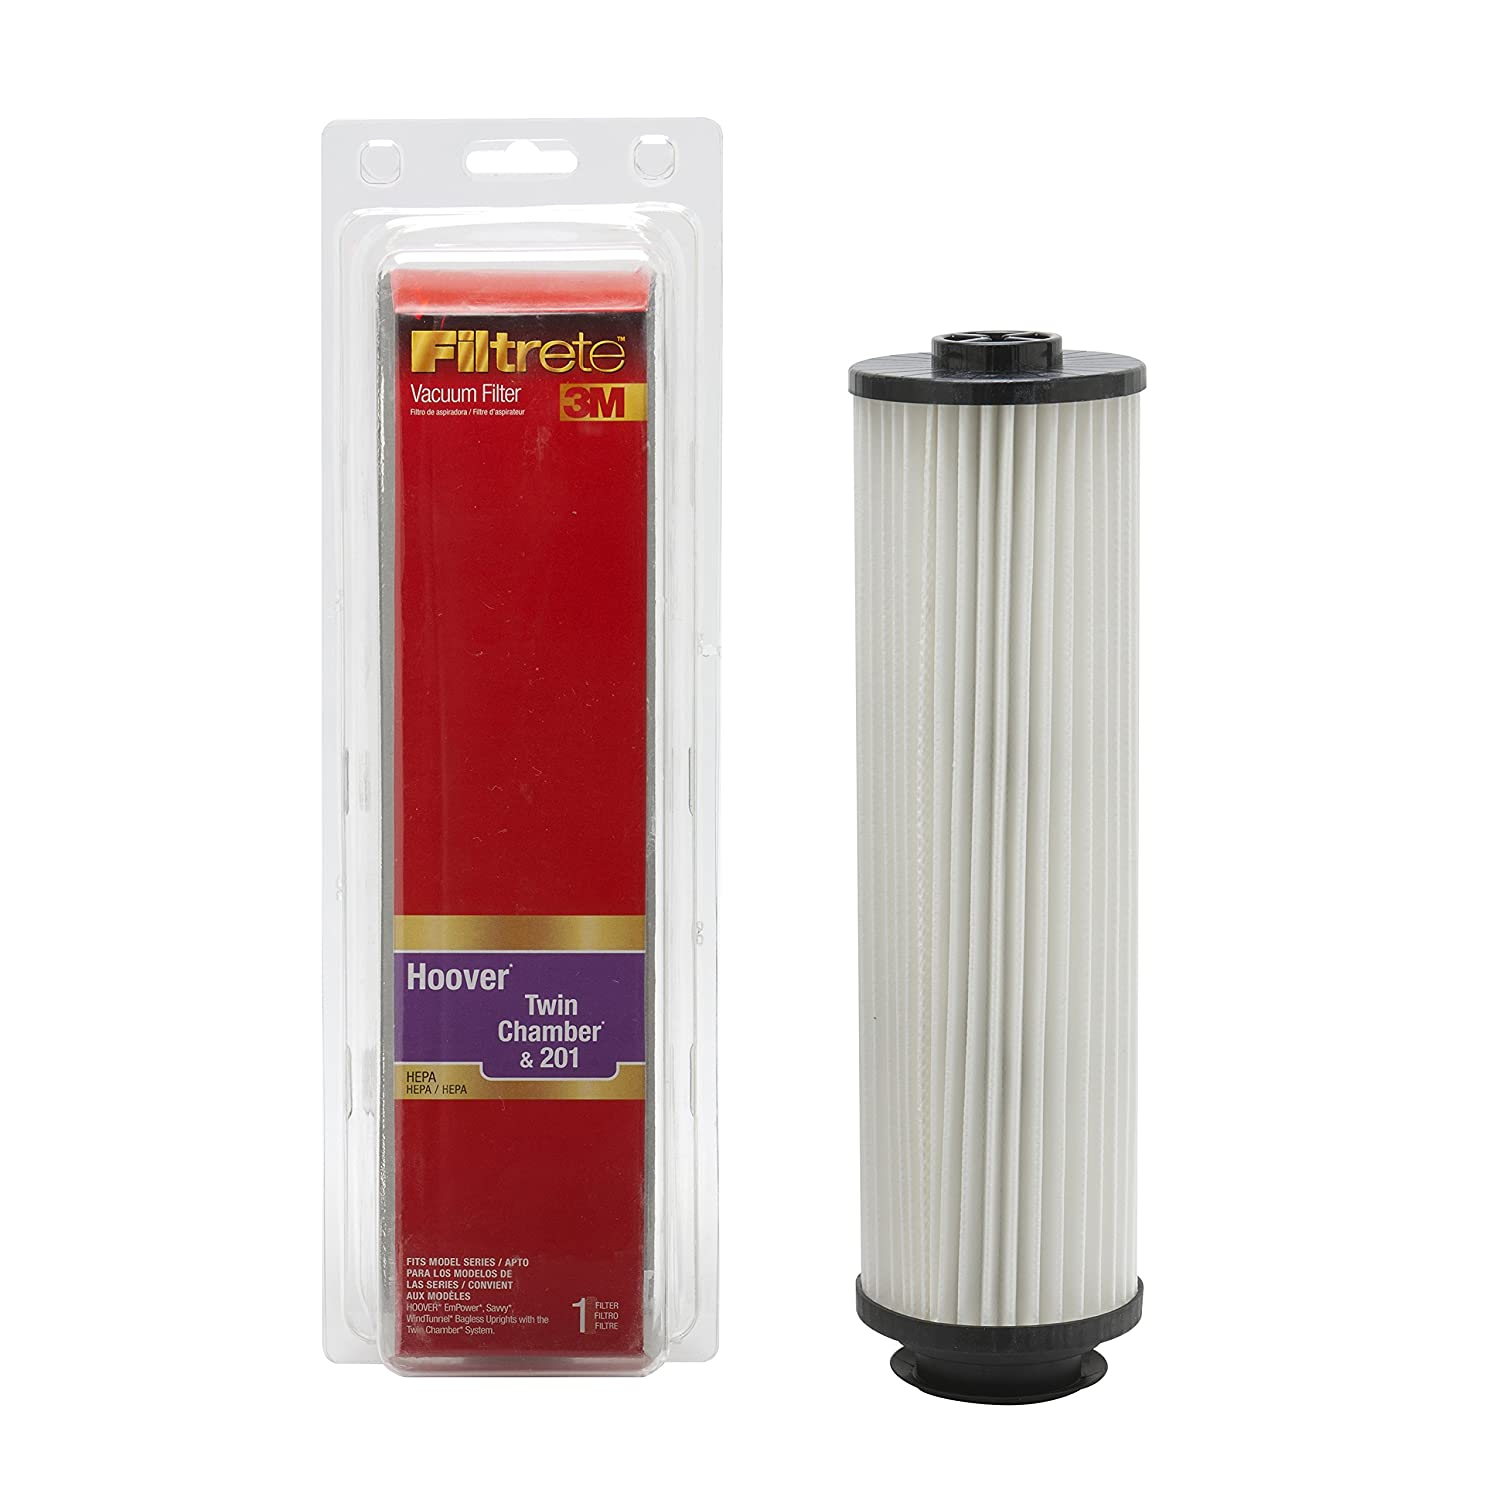 Amazon.com: 3M Filtrete Hoover Twin Chamber & 201 HEPA Vacuum Filter: Home & Kitchen